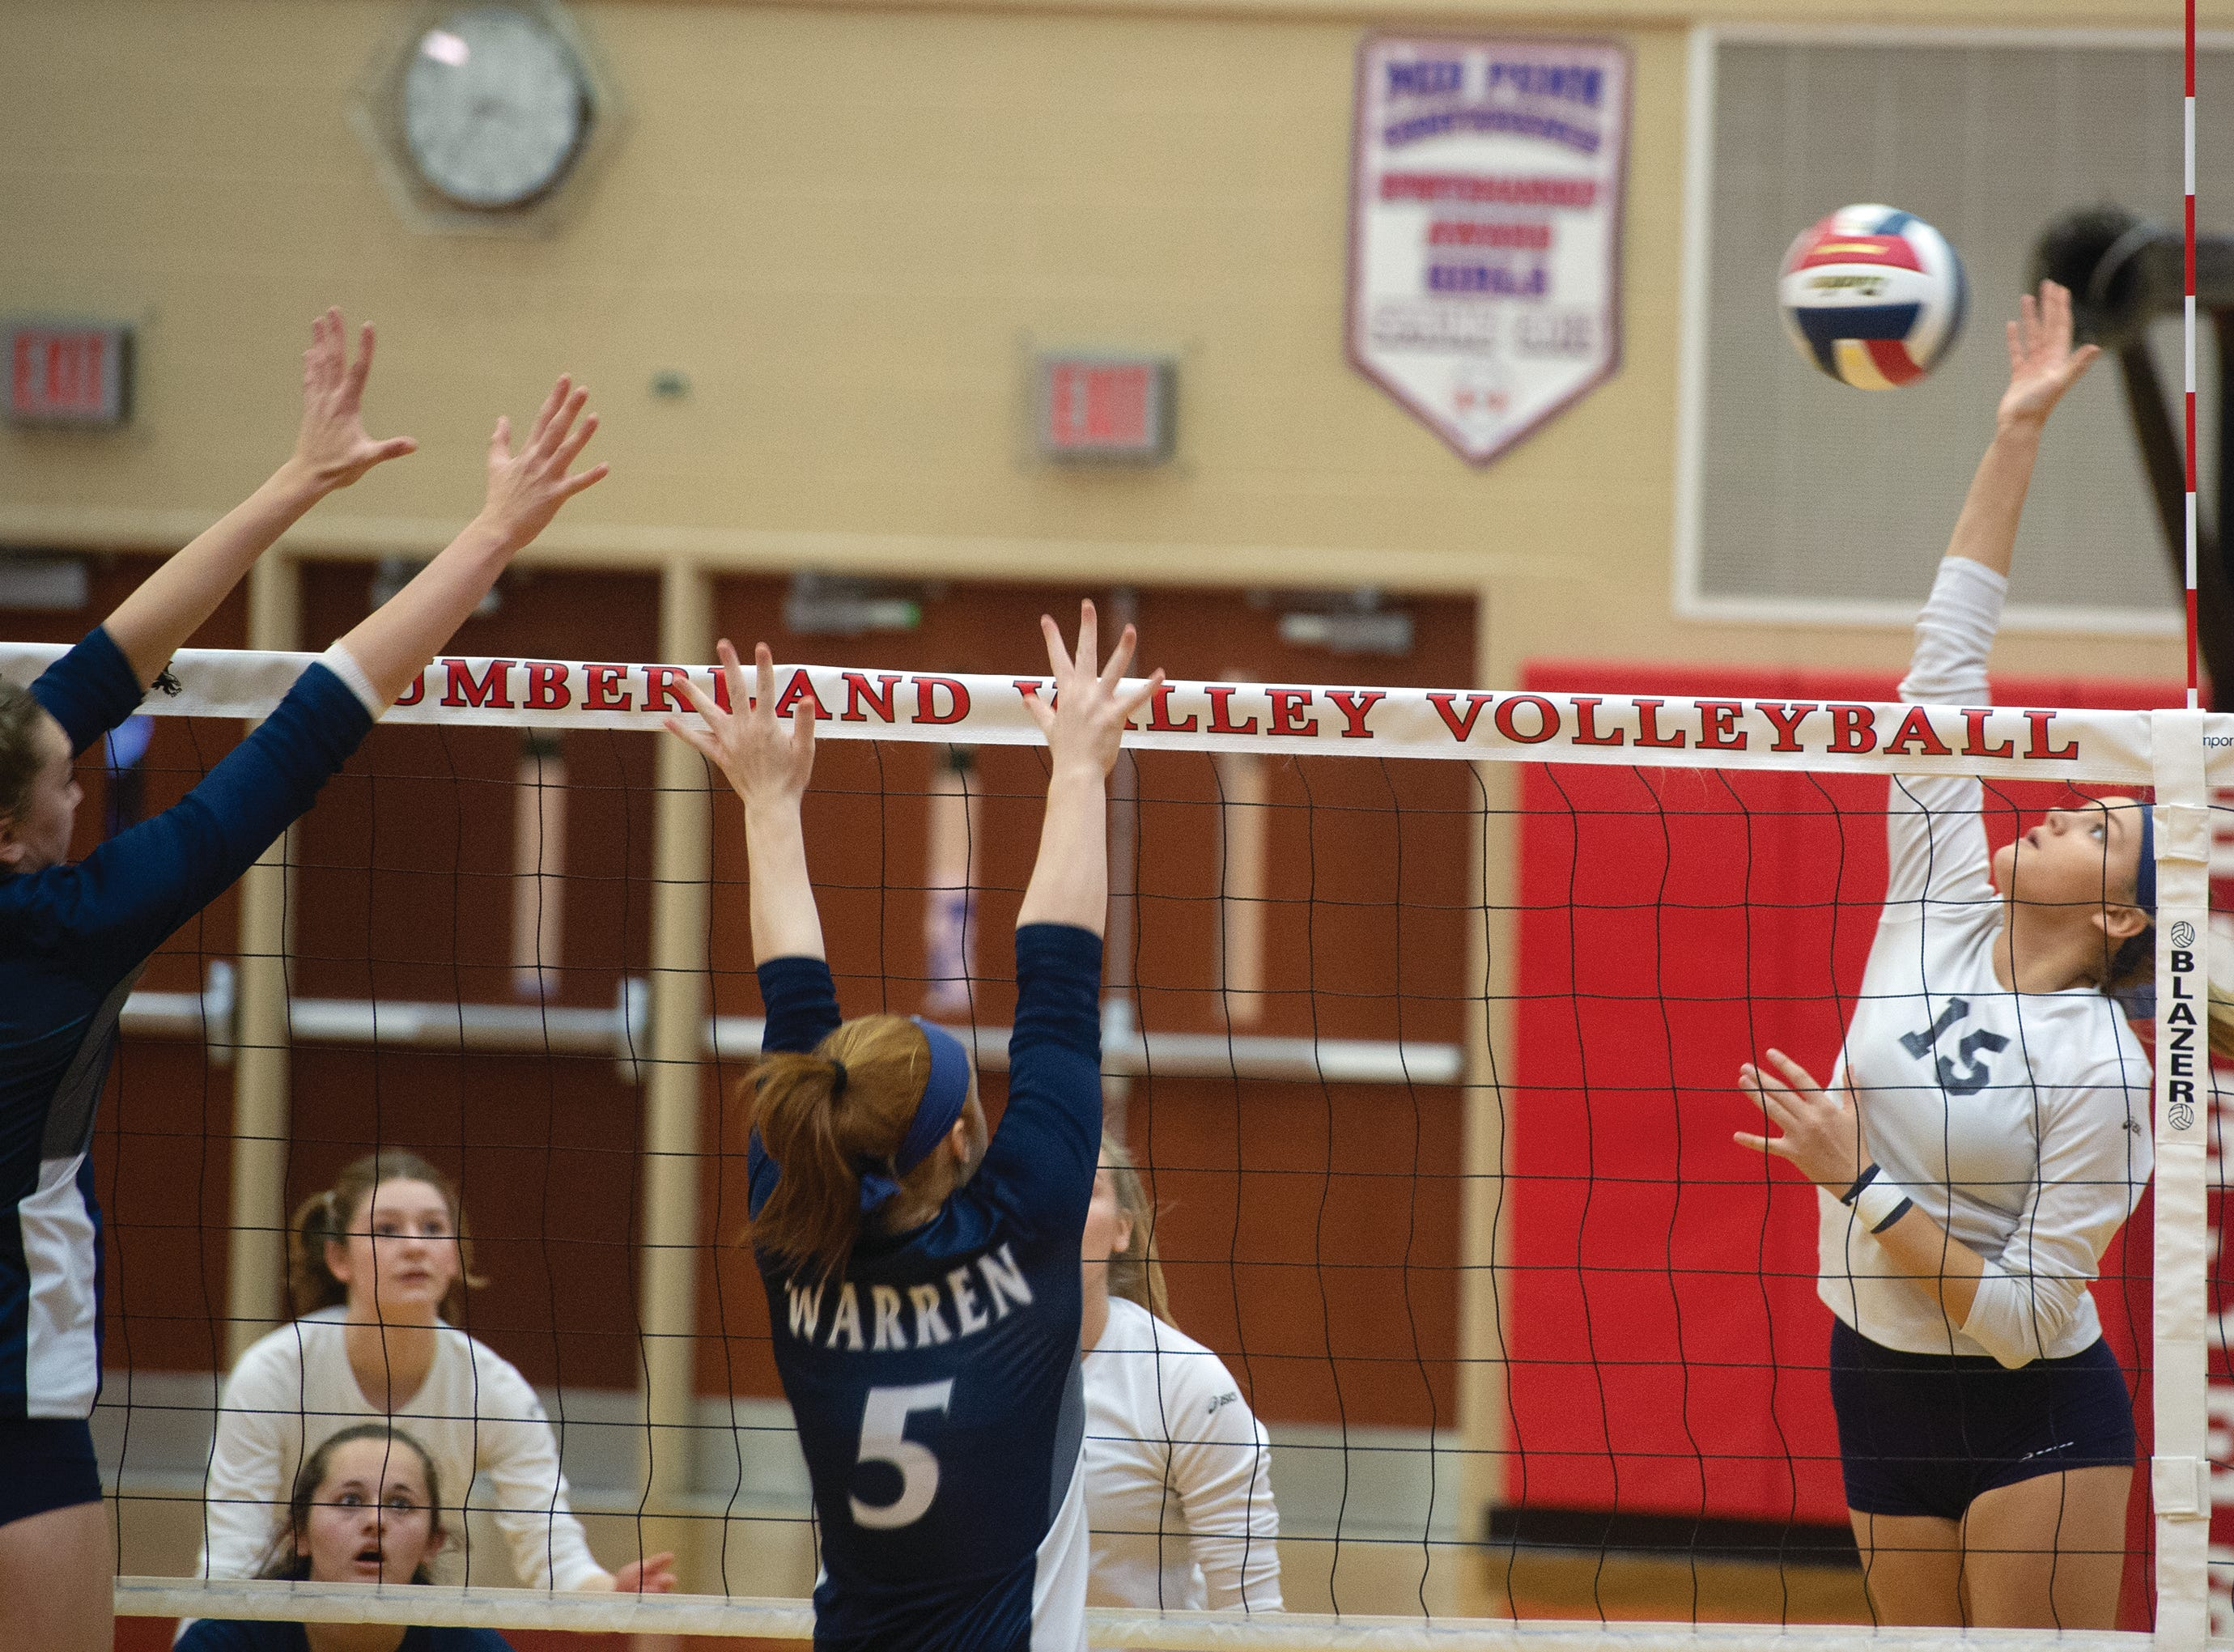 West York's Gianna Krinock goes up for a hit against Warren's double block Saturday in the PIAA Class 3A girls' volleyball championship. The Bulldogs won 3-0.